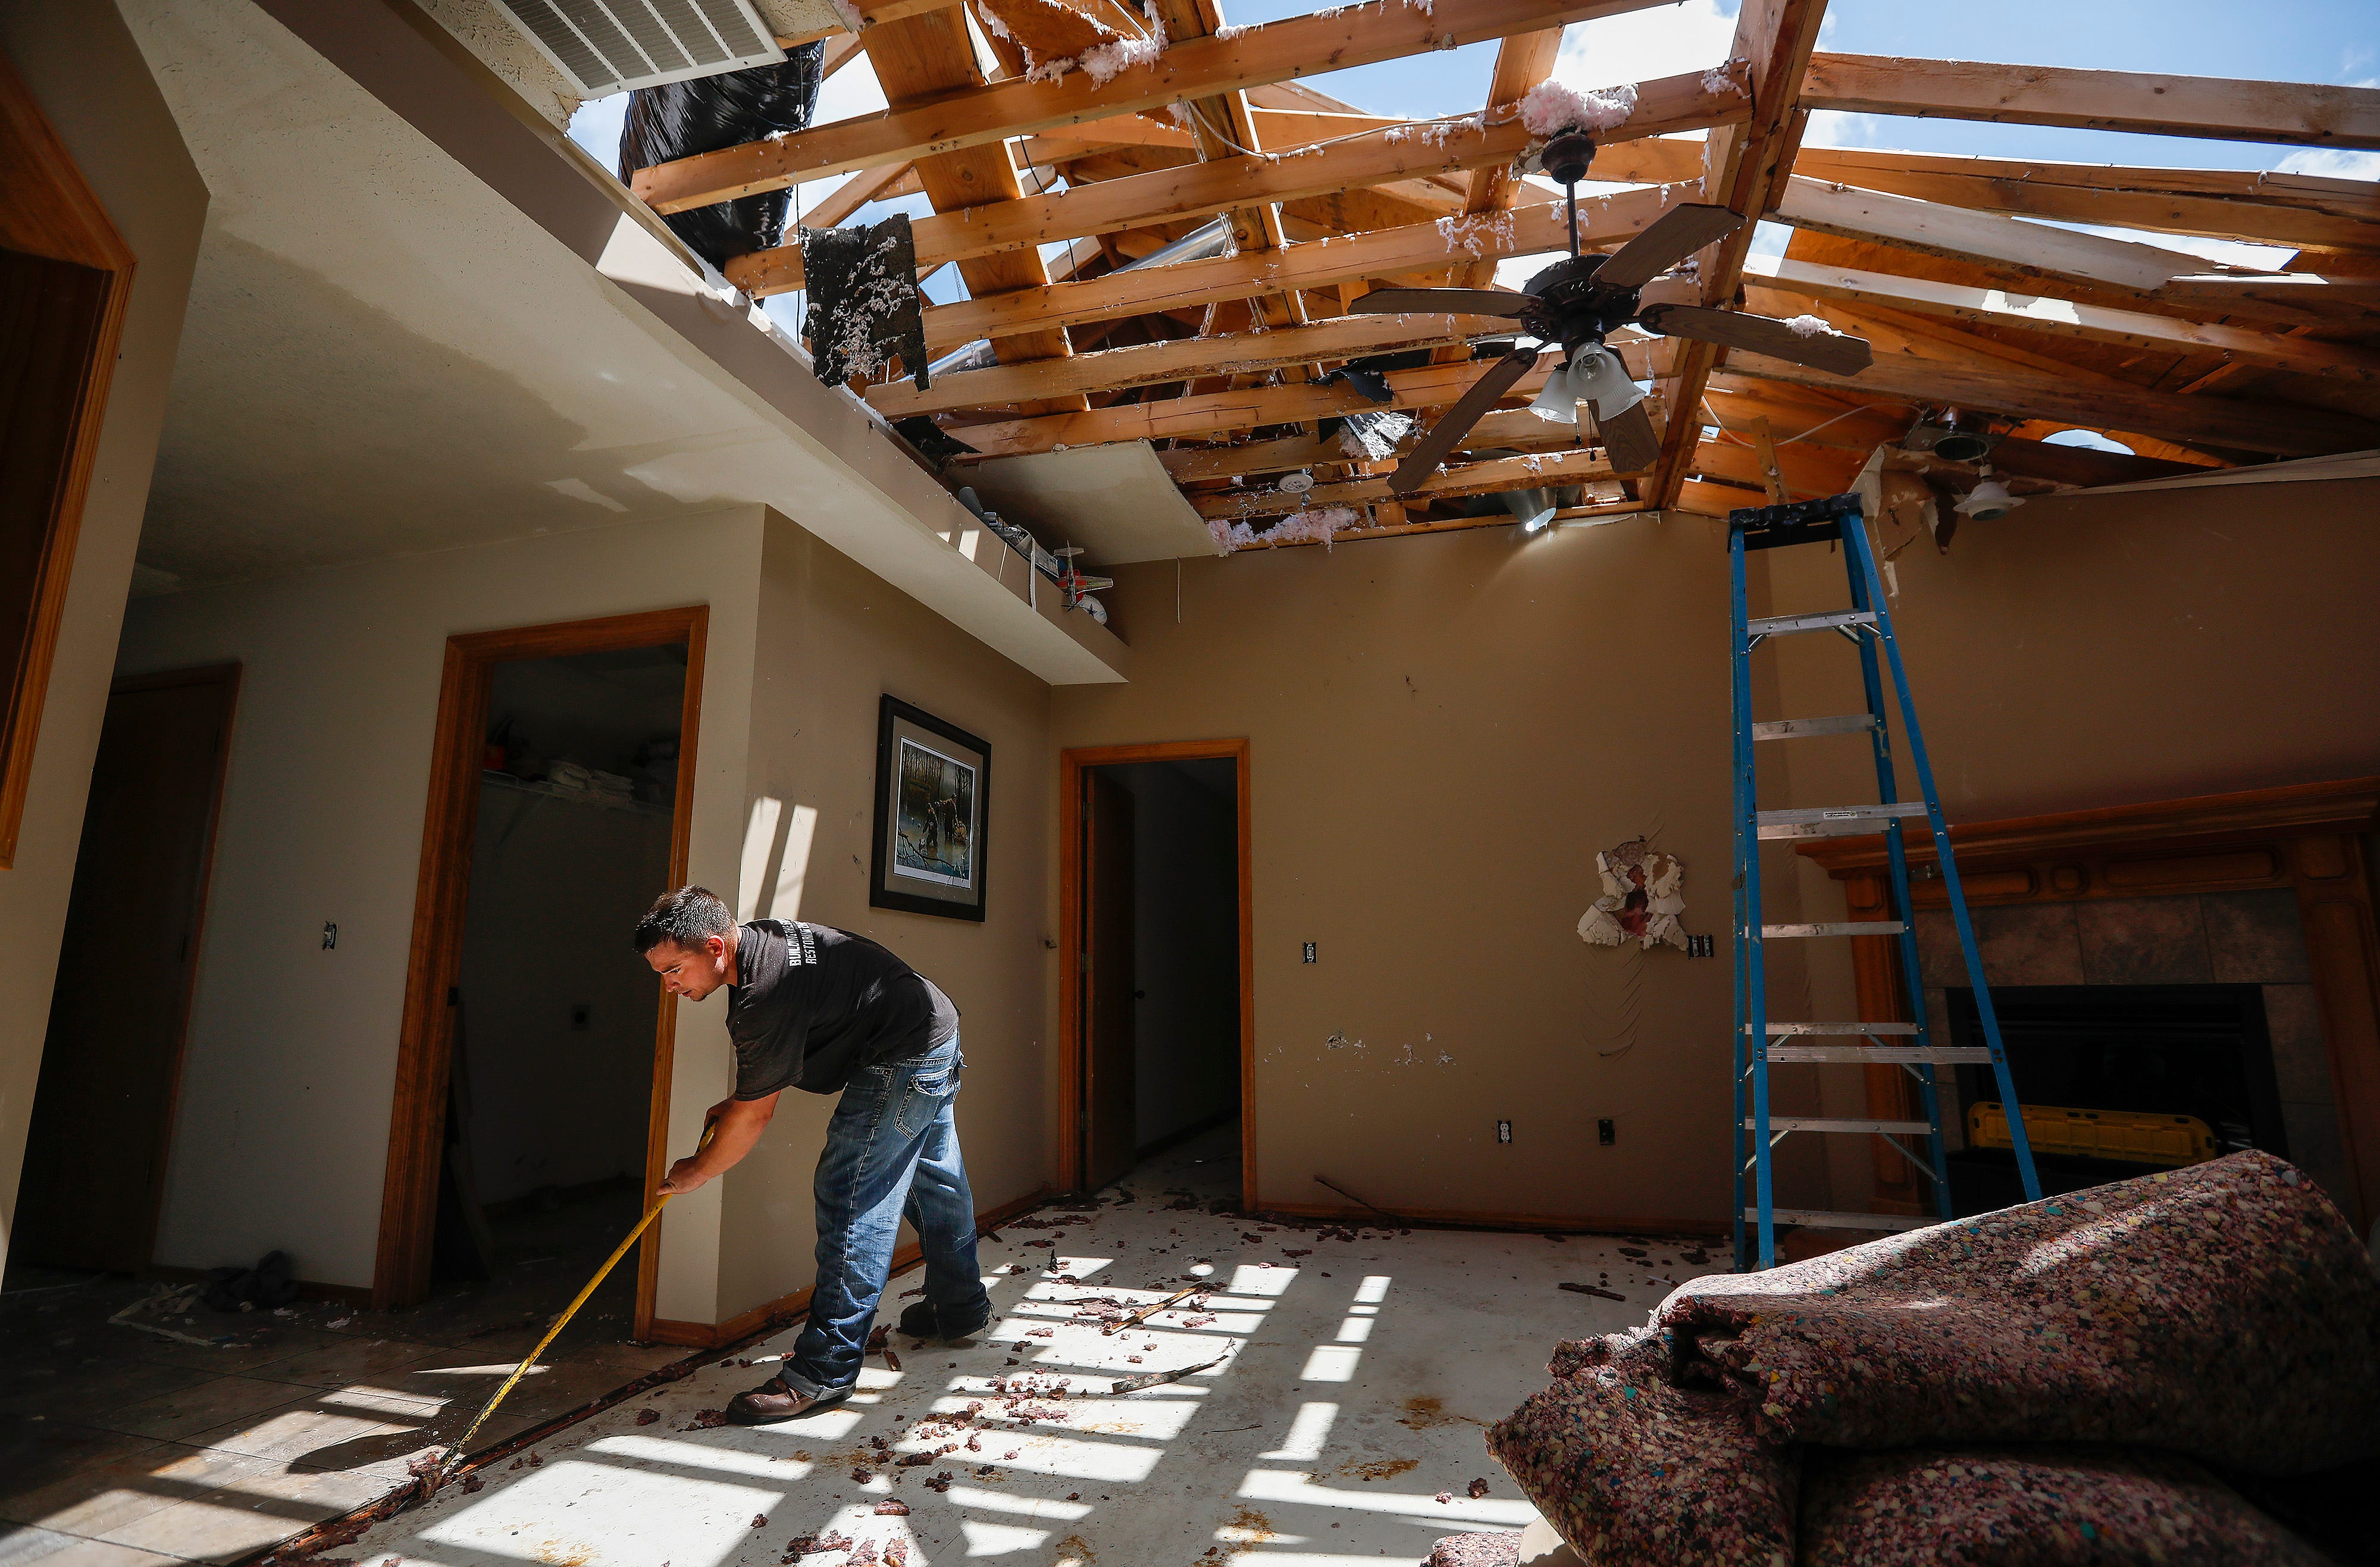 Ryan Payne, of Solutions Systems, works on restoring a home that  was damaged by a tornado that moved through Ozark on May 30, 2019.